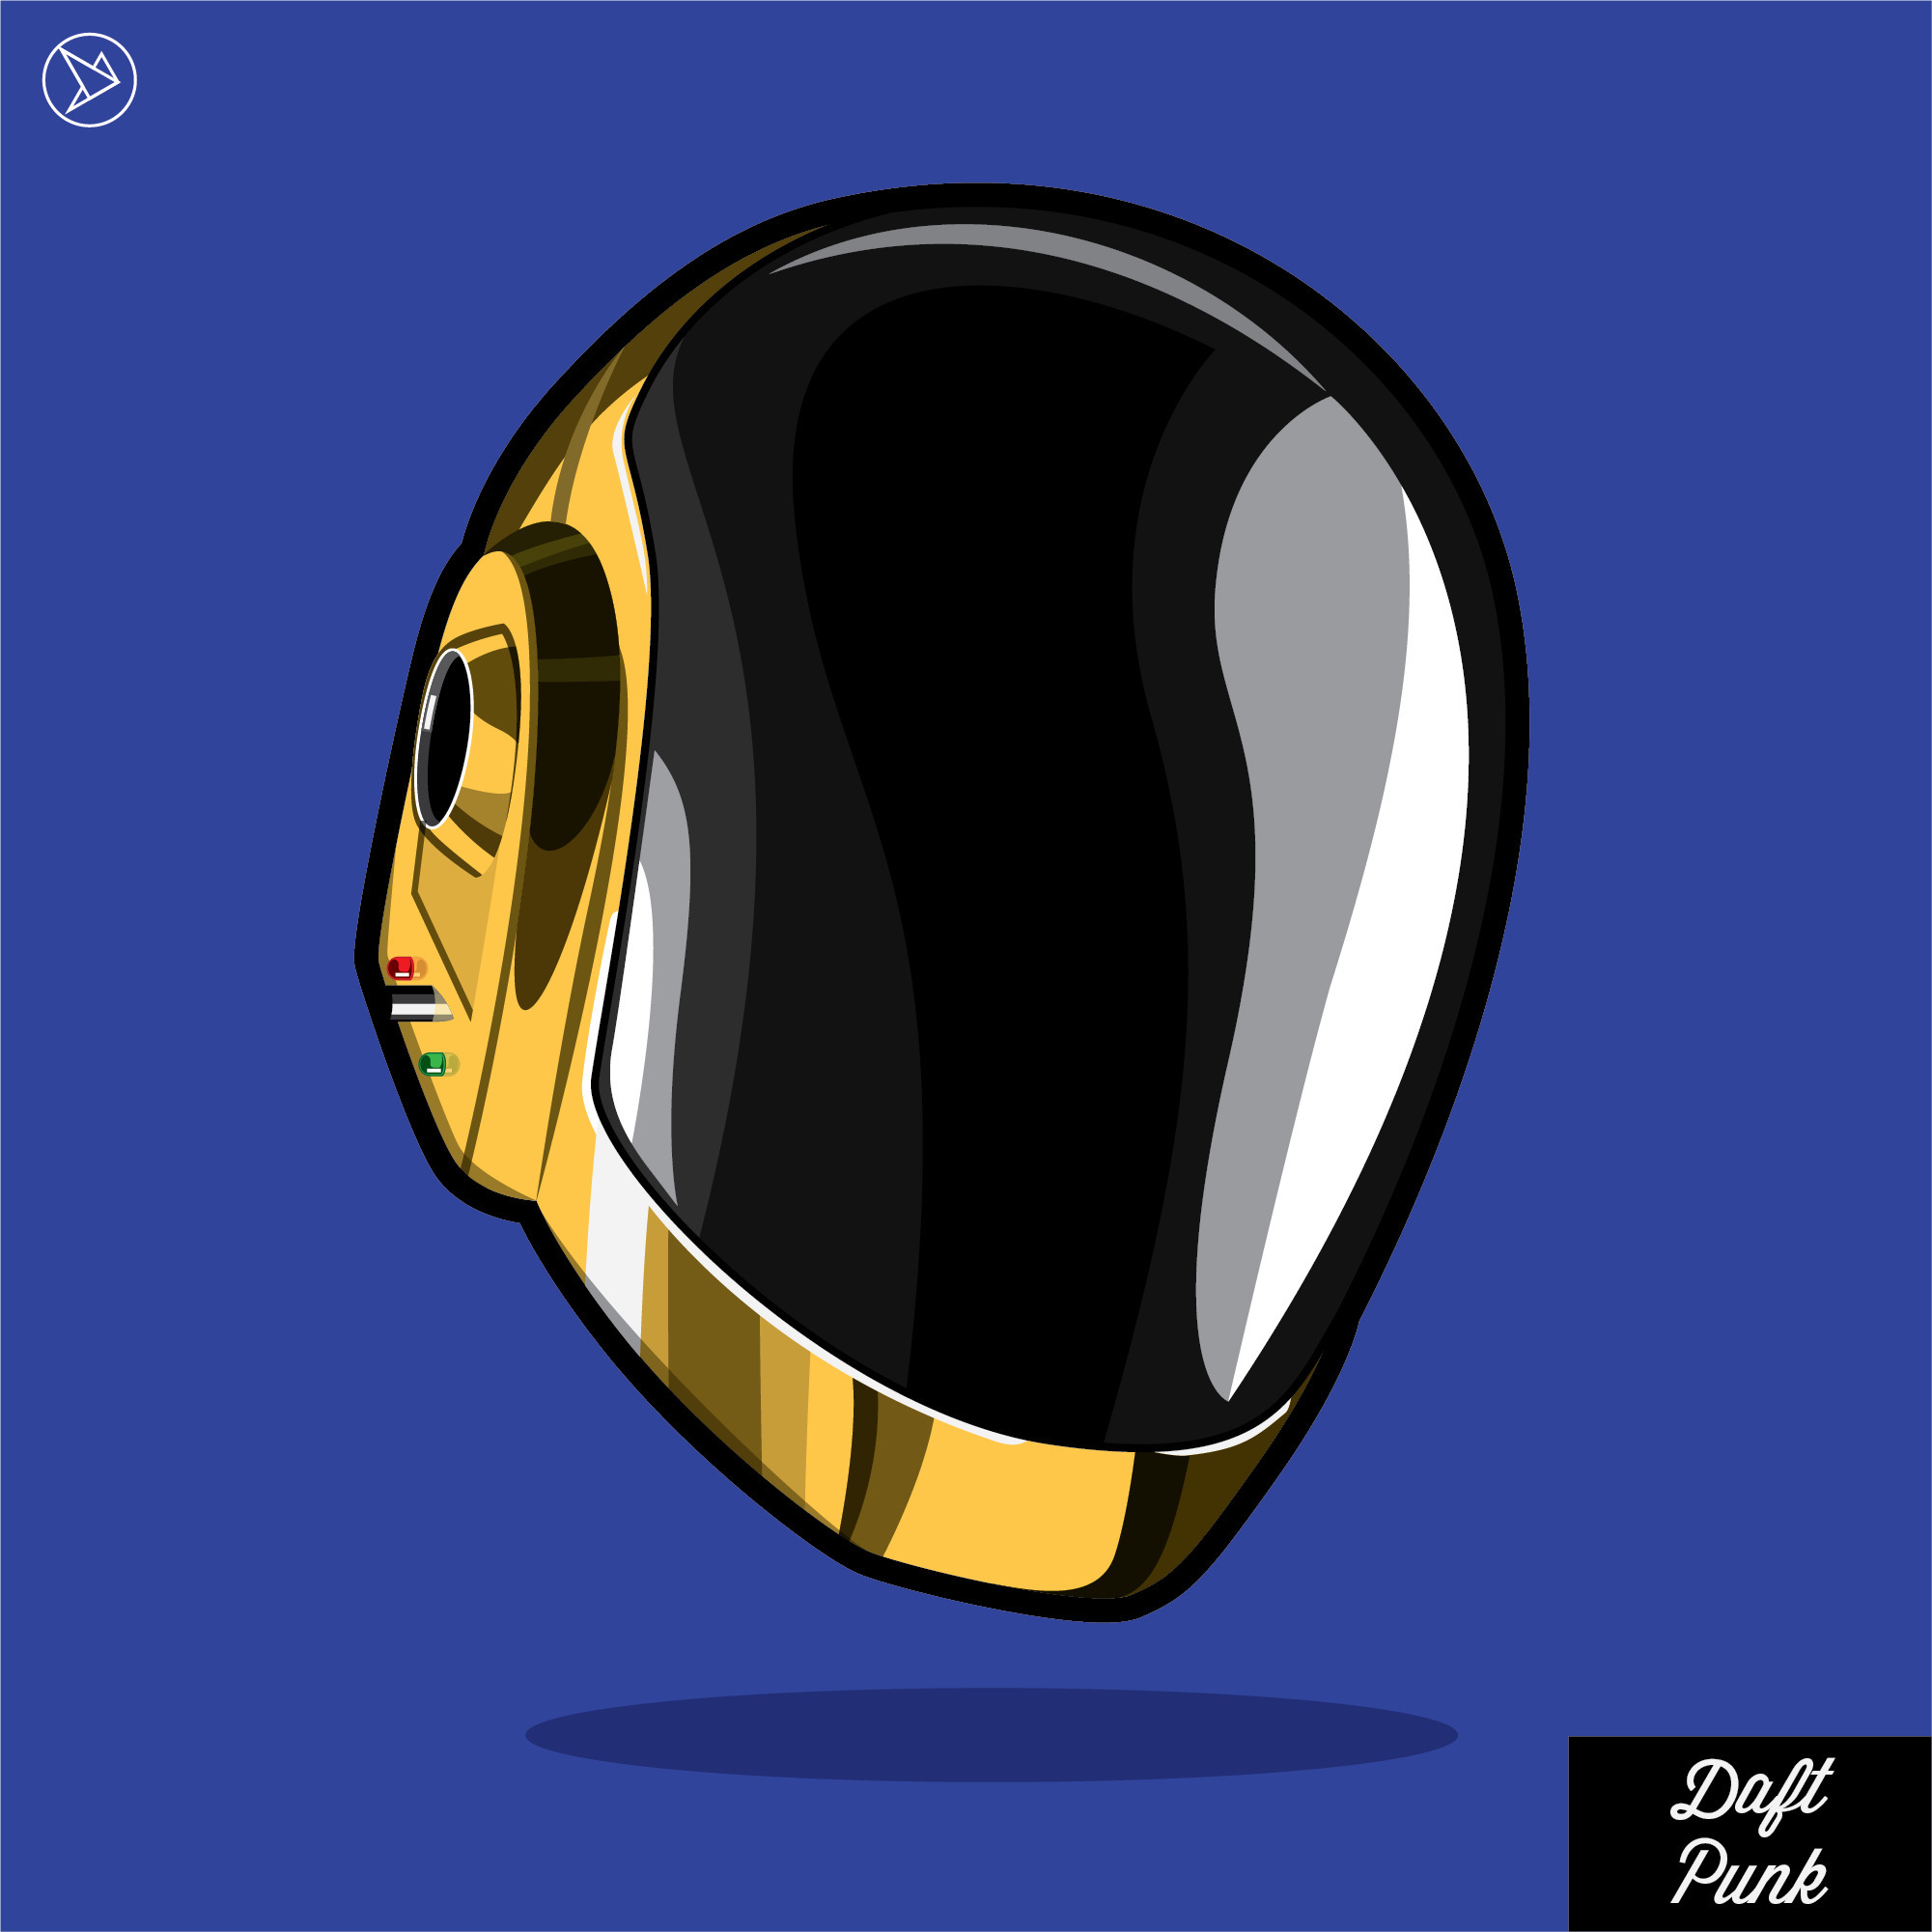 Daft Punk - illustration, cartoon - superslap15 | ello